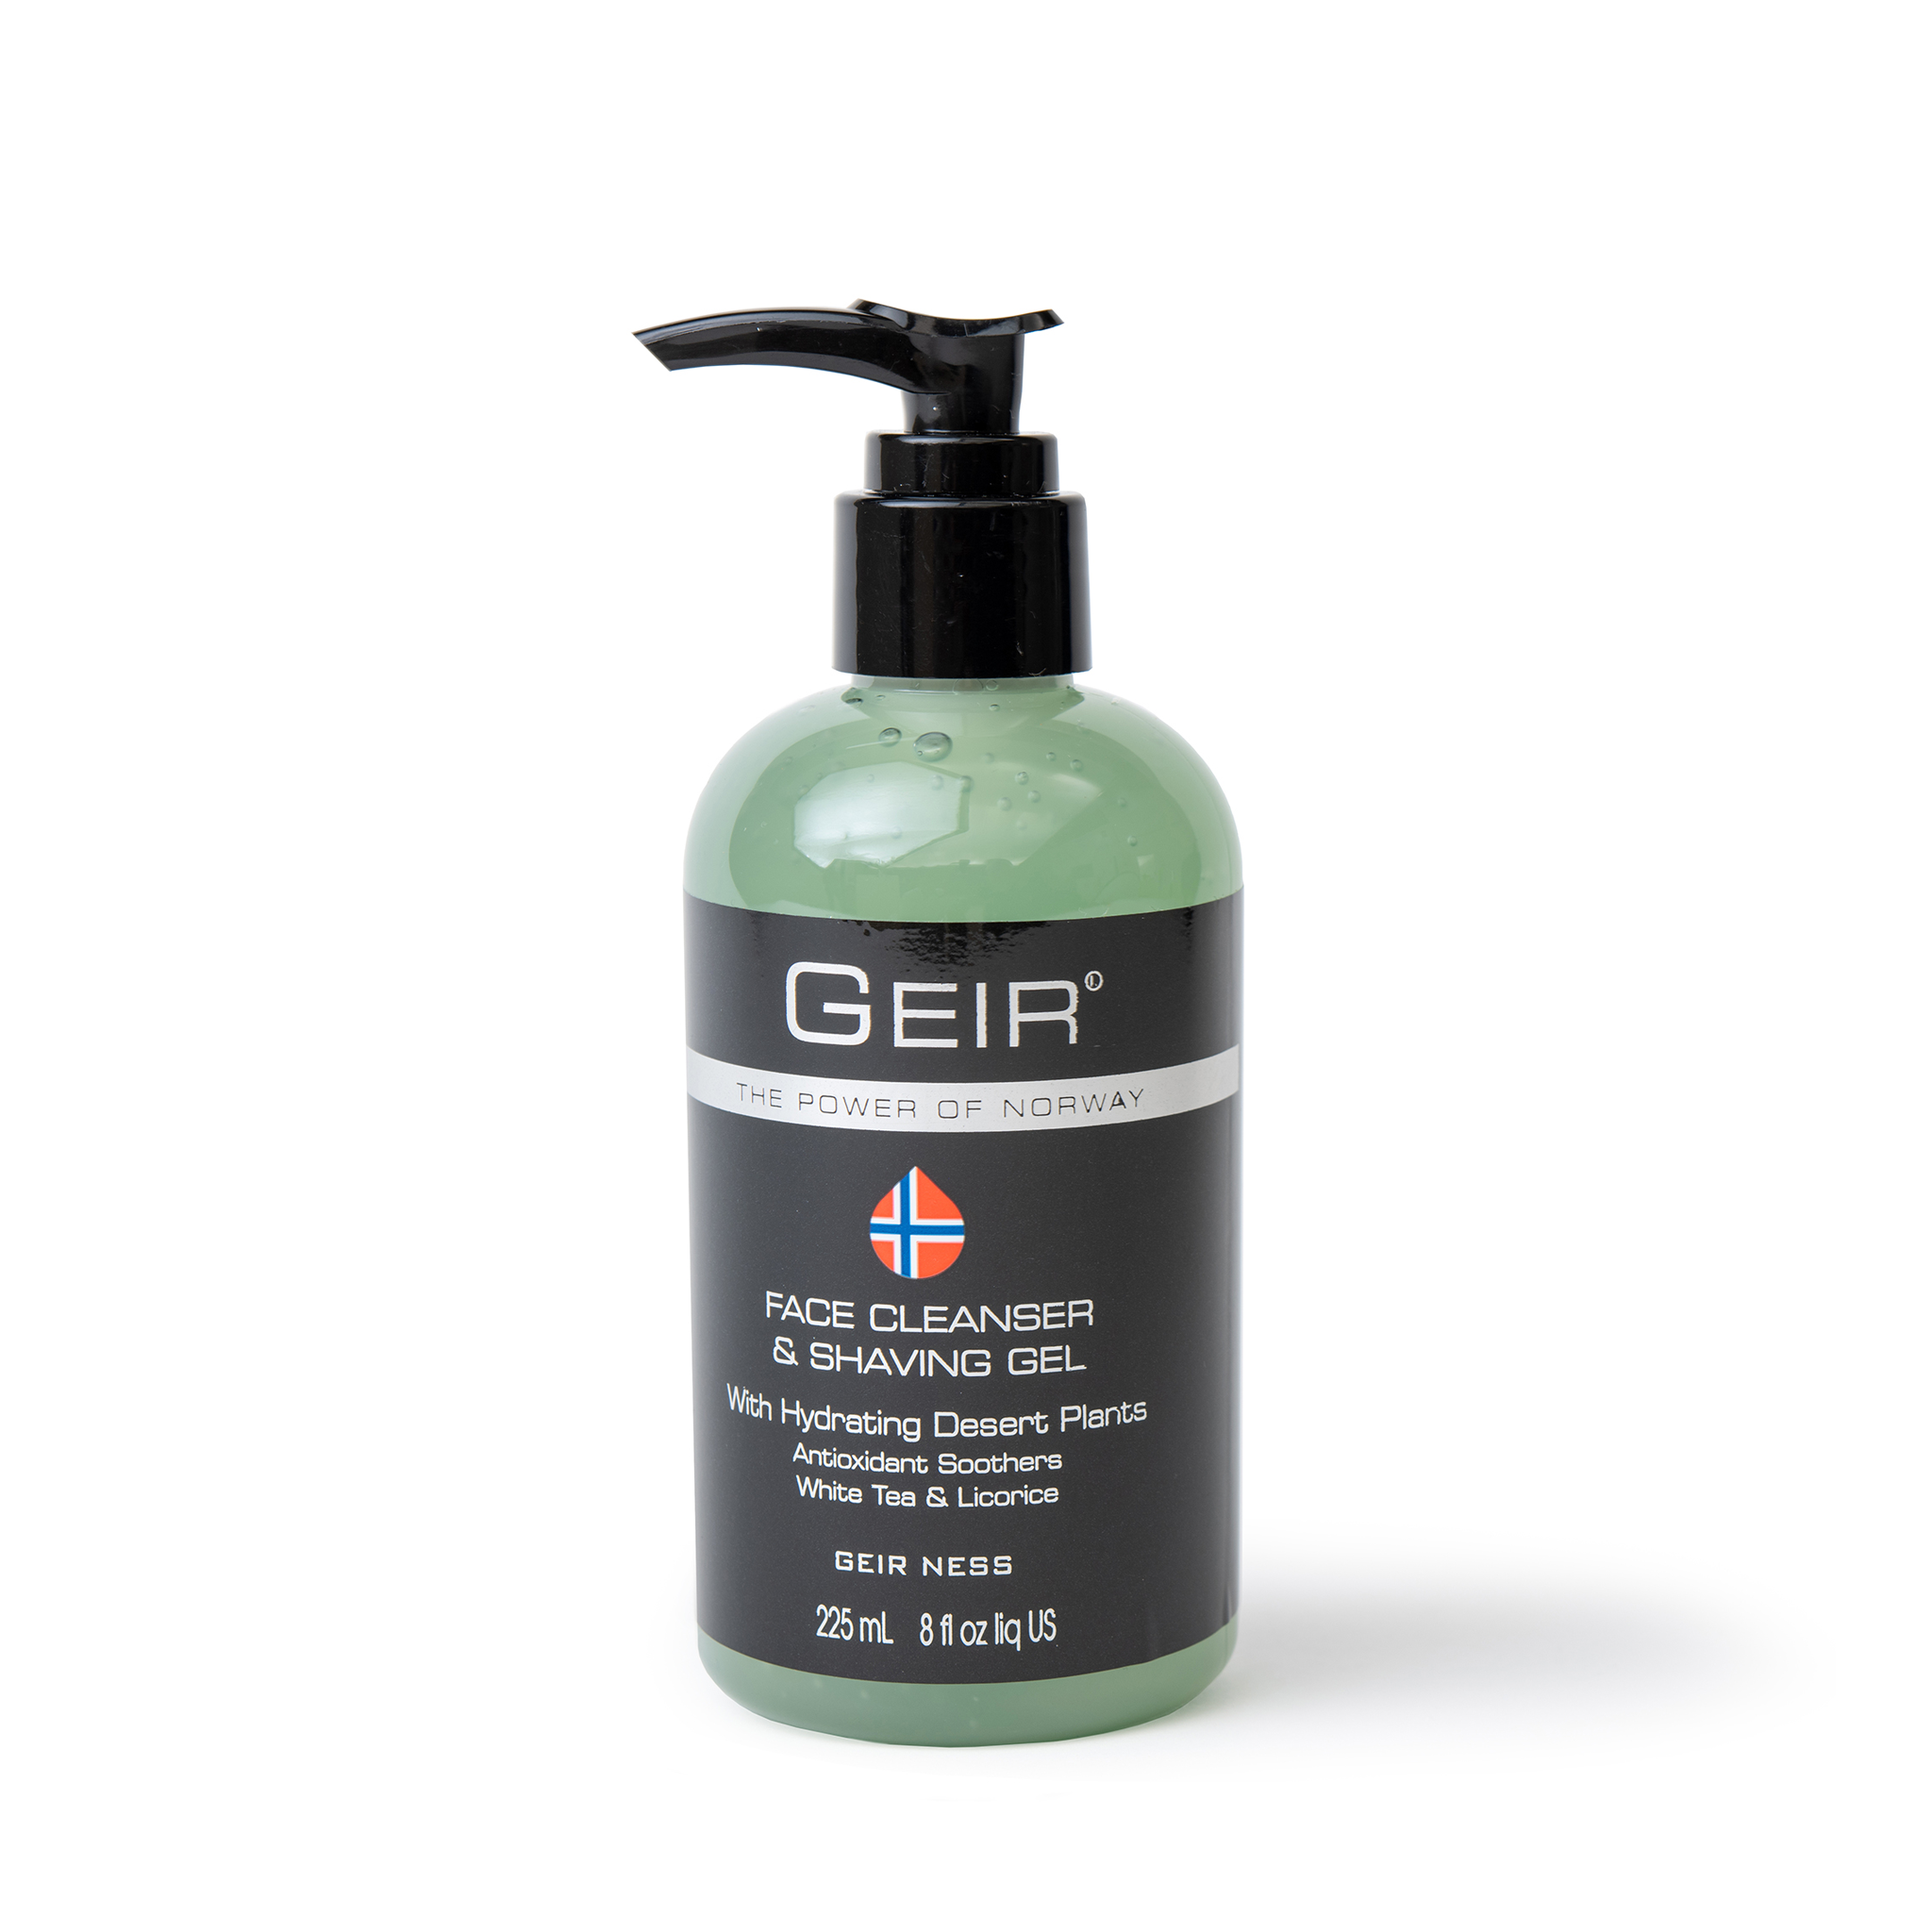 Geir Face Cleanser & Shaving Gel